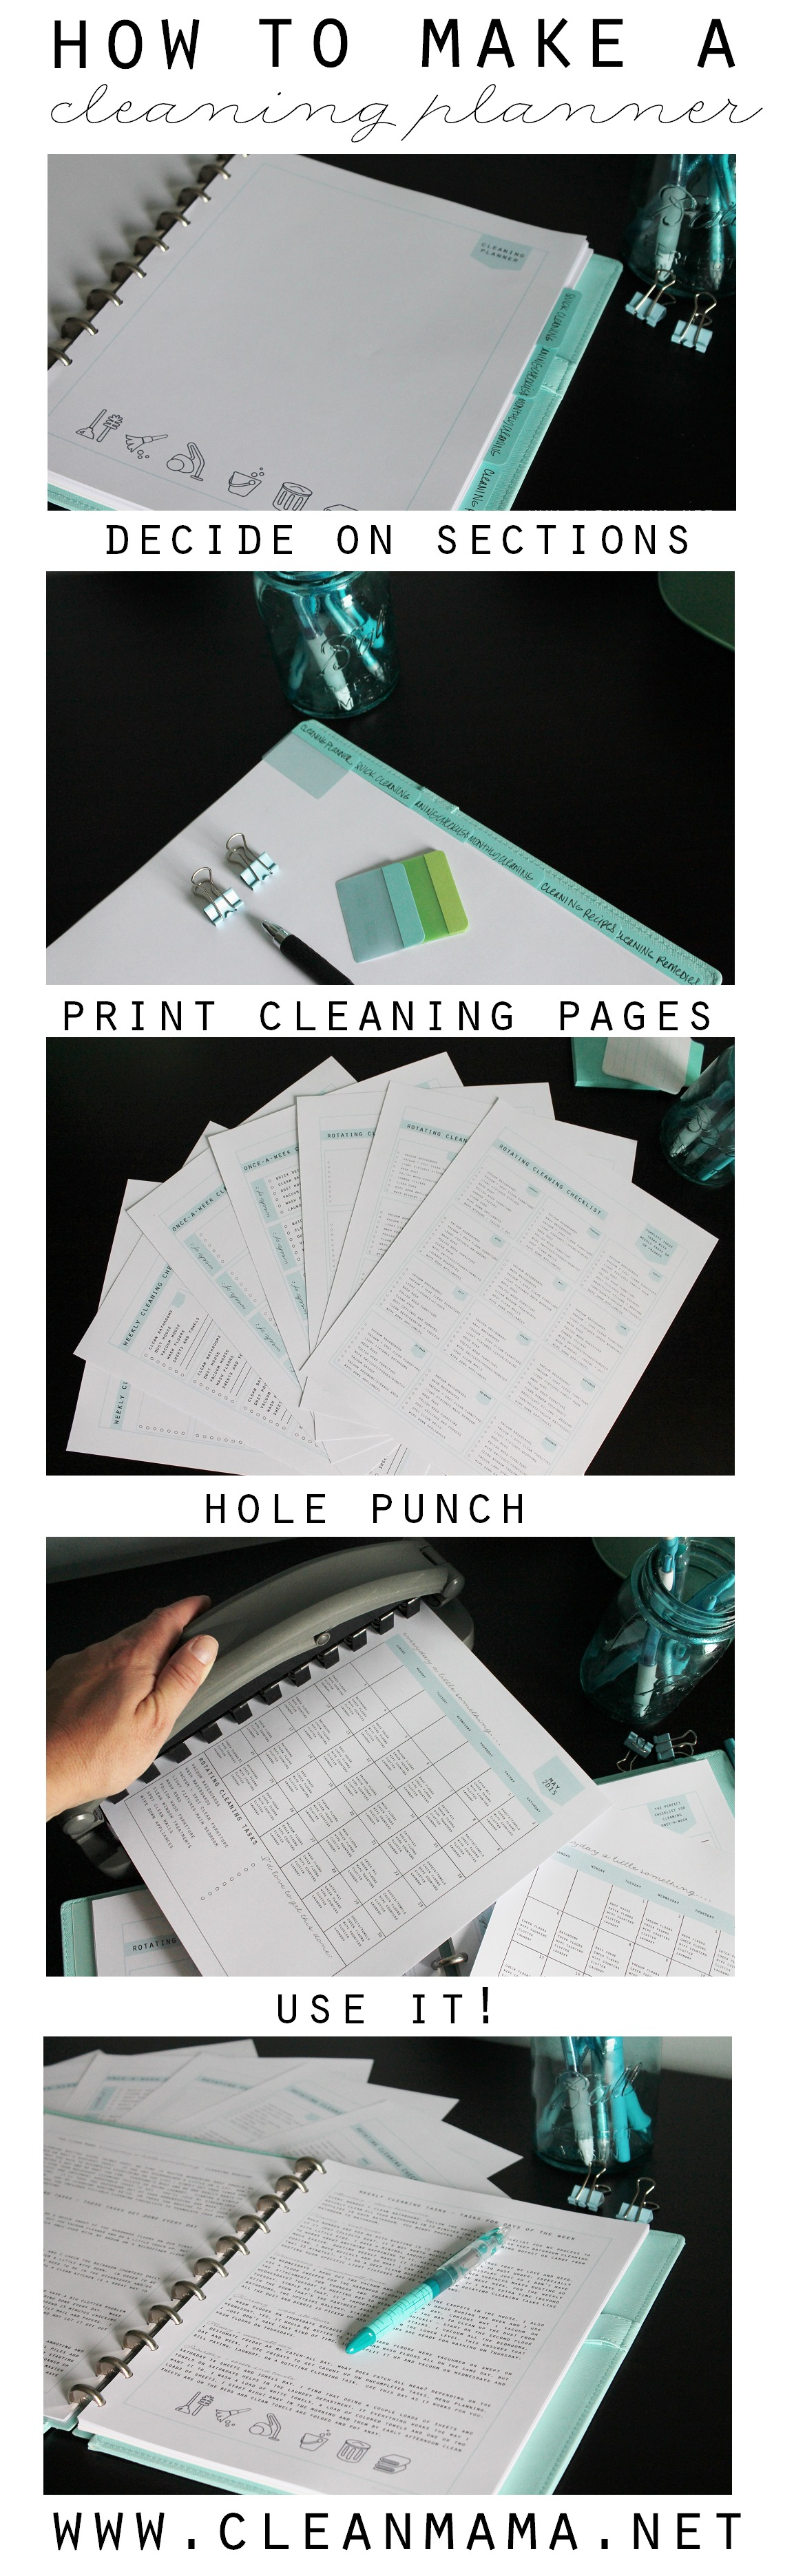 How to Make a Cleaning Planner Infographic via Clean Mama